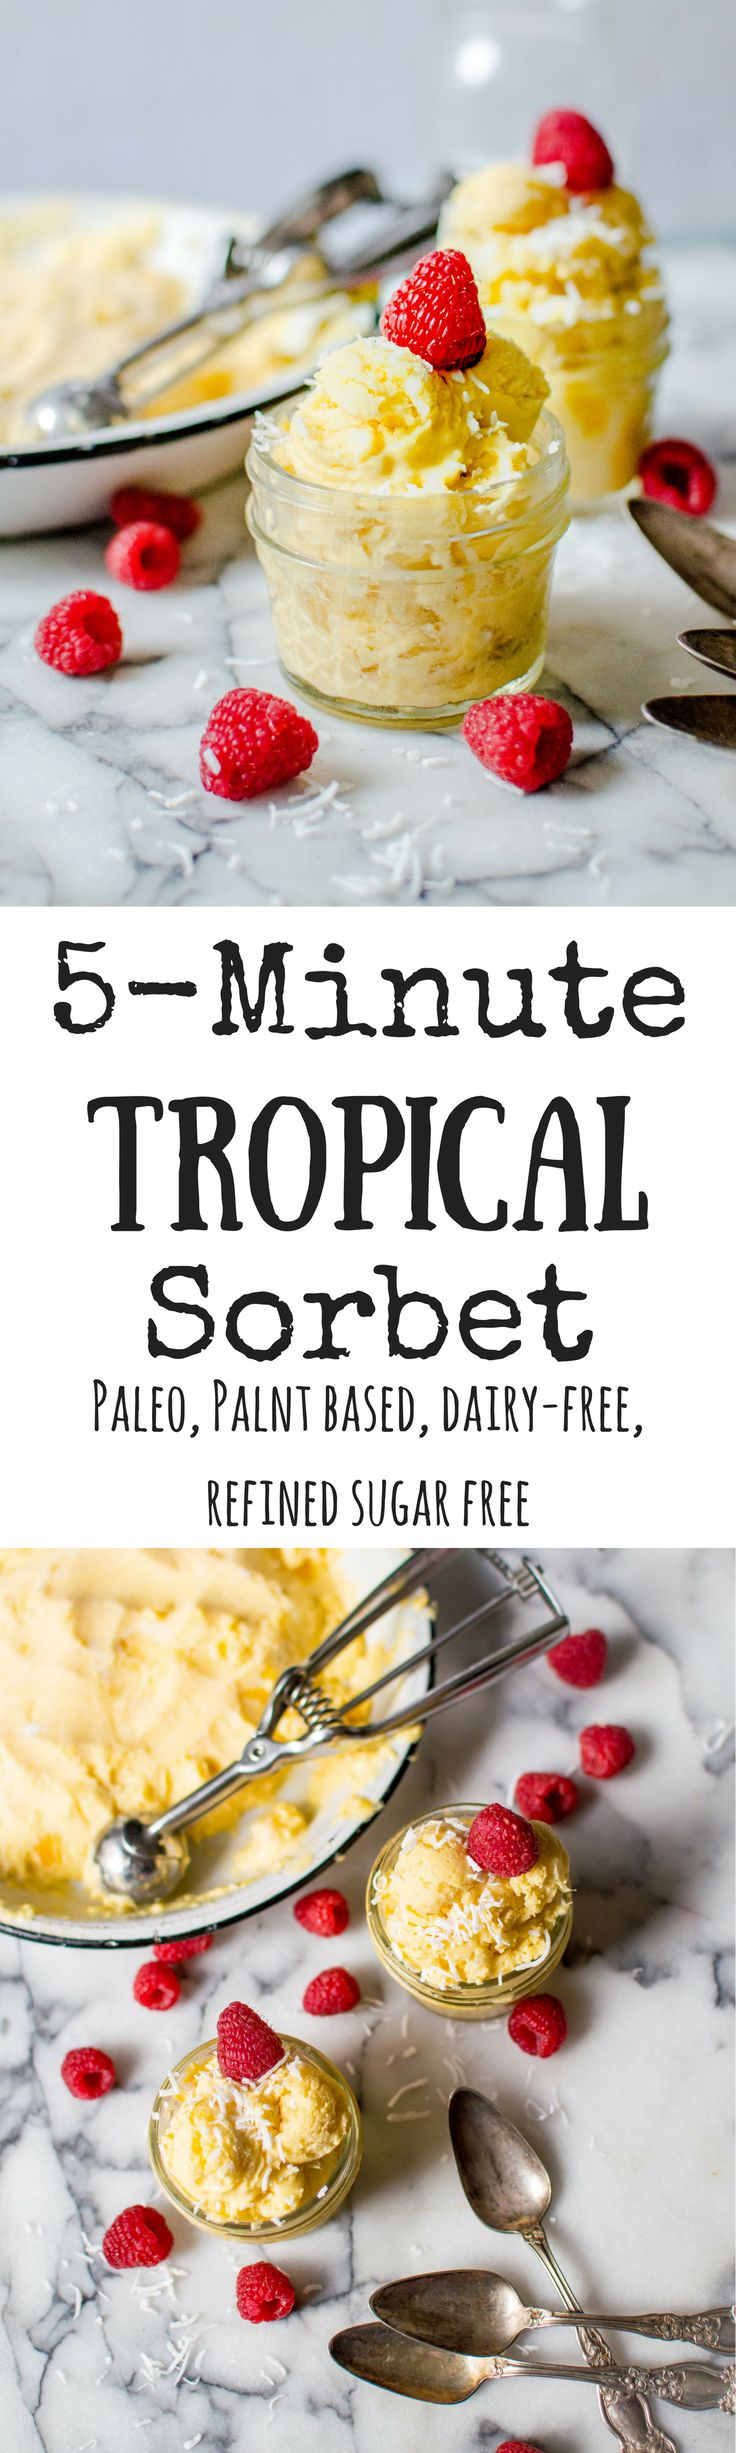 No ice cream maker needed for this simple, delicious and healthy recipe! The only thing that stands between you and this easy 5-Minute Tropical Sorbet is about 5 minutes and your food processor. Paleo, Plant Based, Dairy-Free simple paleo dessert